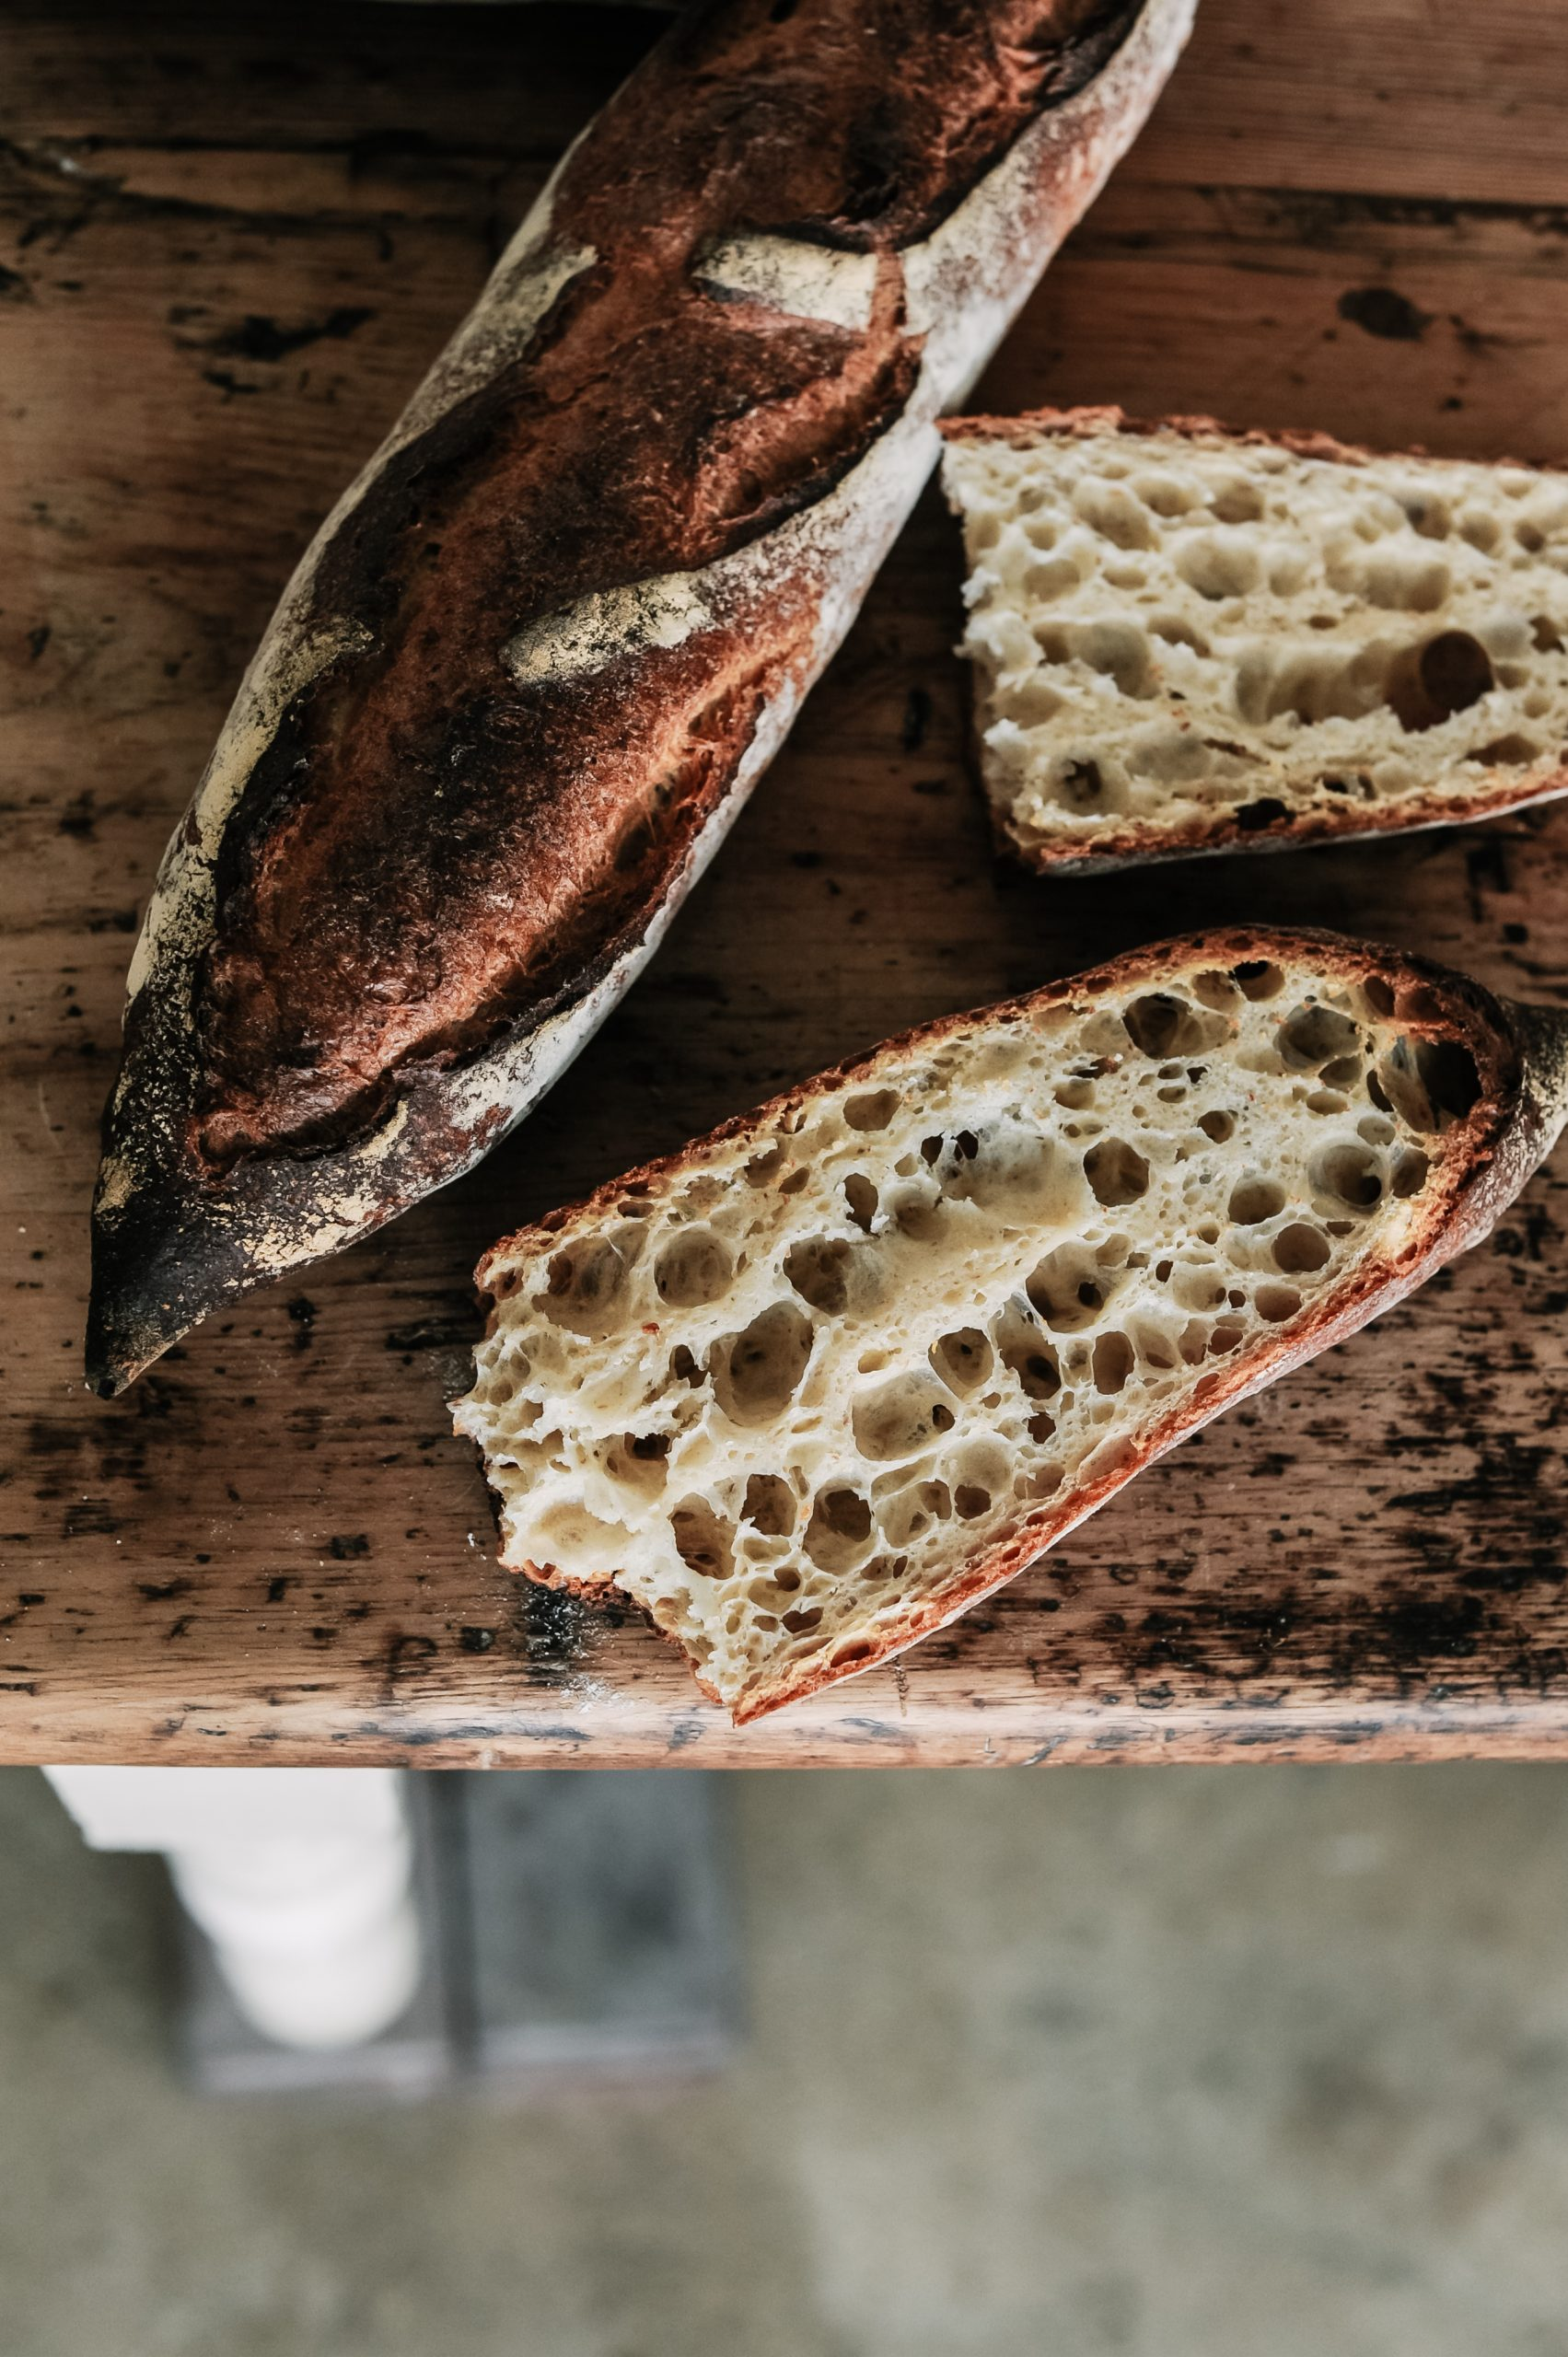 June Newsletter: Learn to Make French Sourdough Baguettes